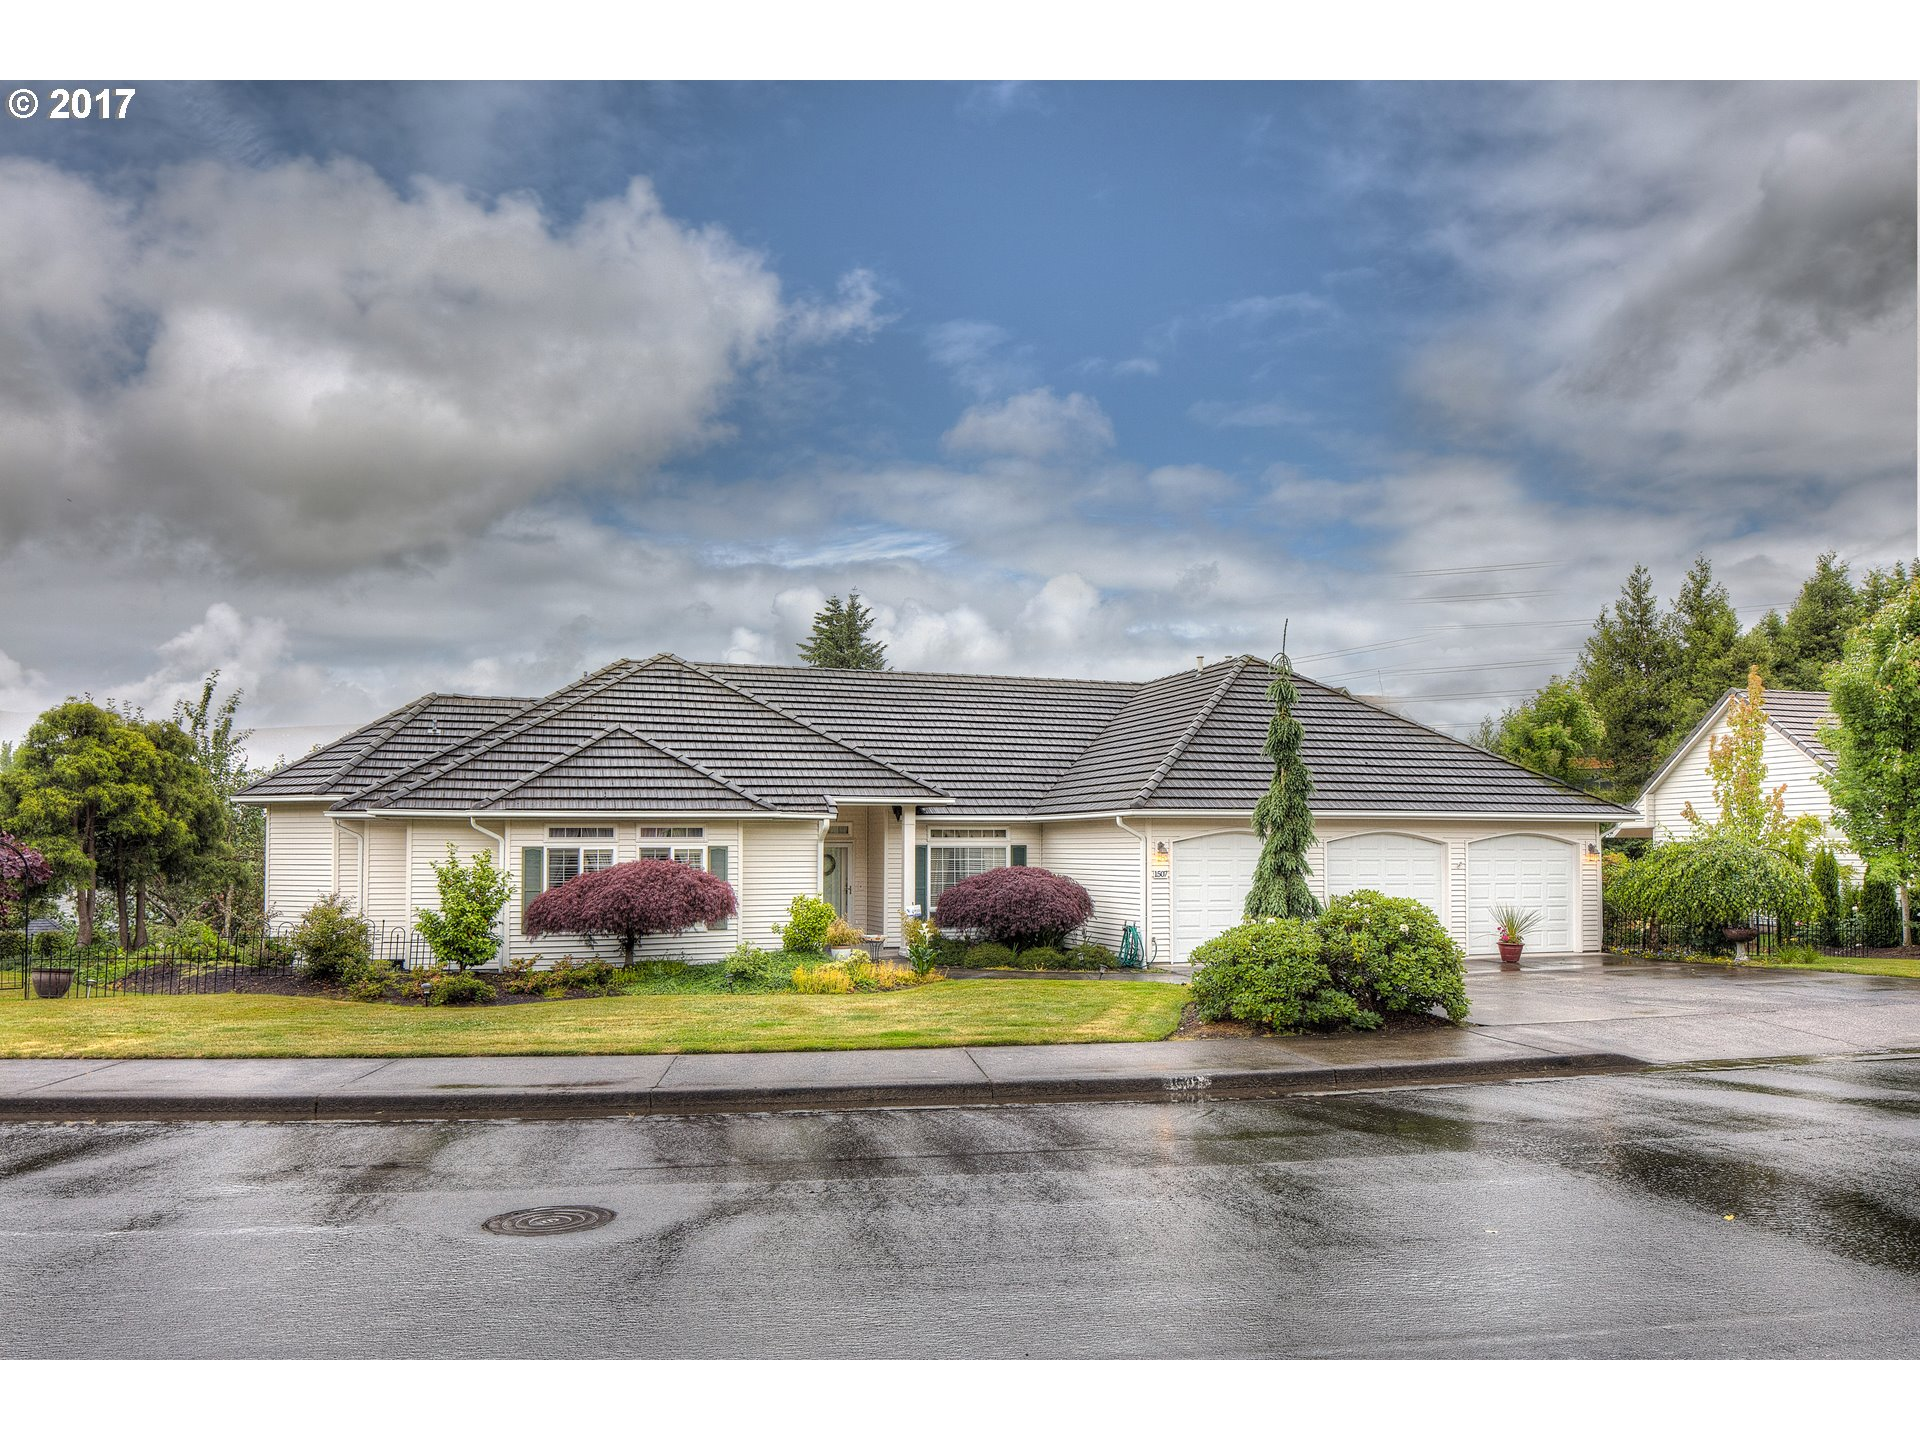 1507 NW GREGORY DR, Vancouver, WA 98665